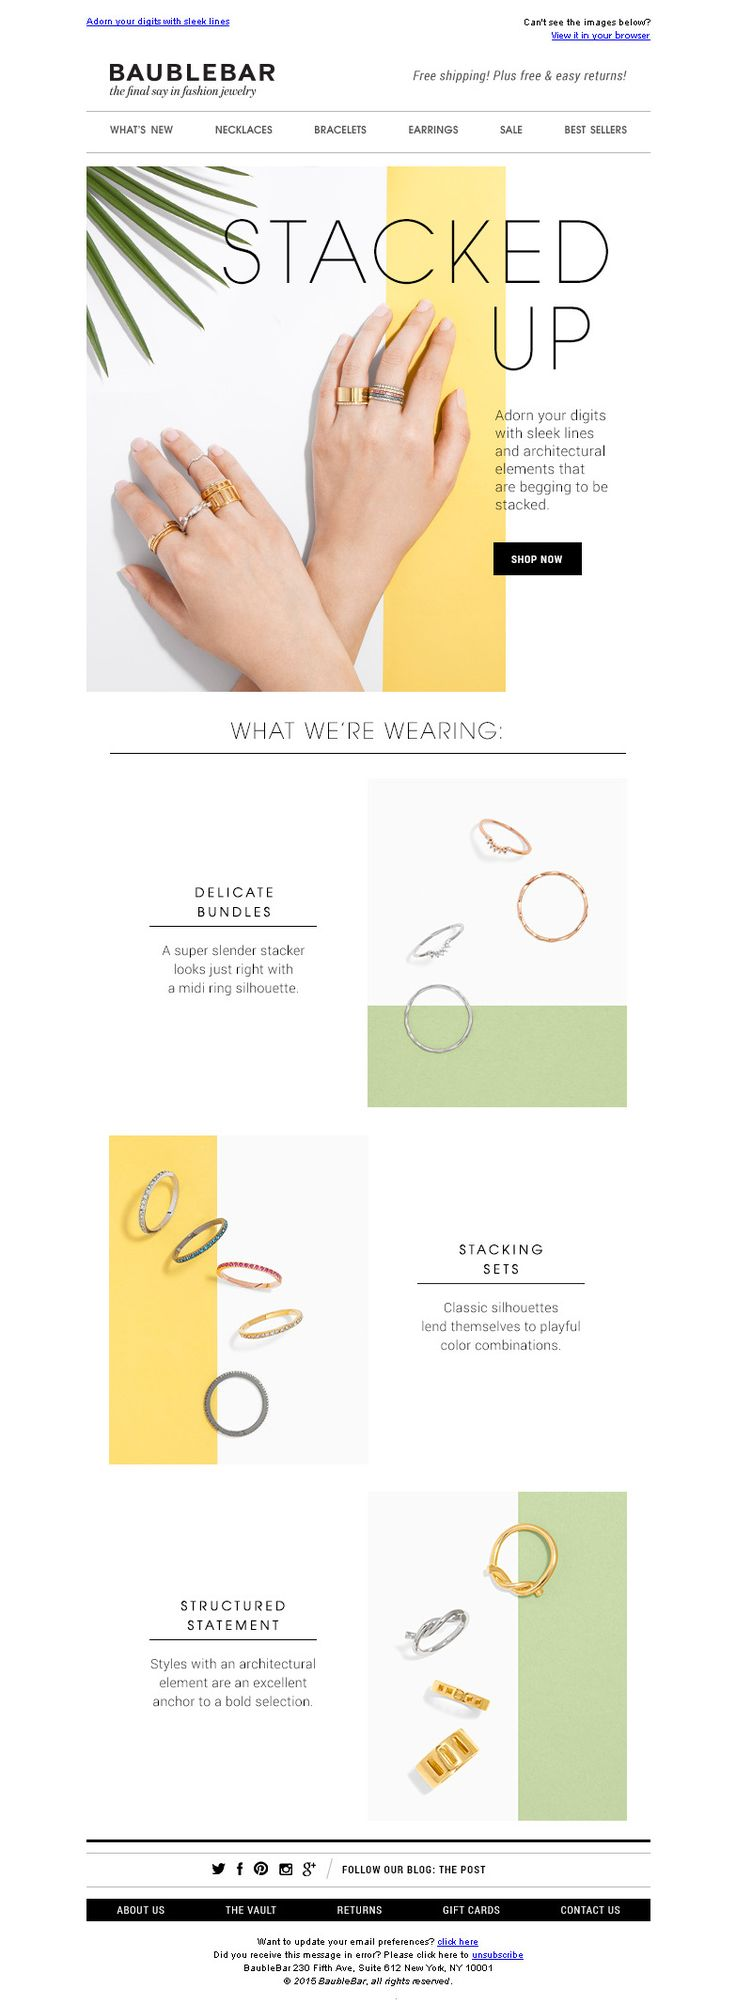 BaubleBar. Simple, and modern design at it's best. Great balance of color and imagery with a clear call to action.